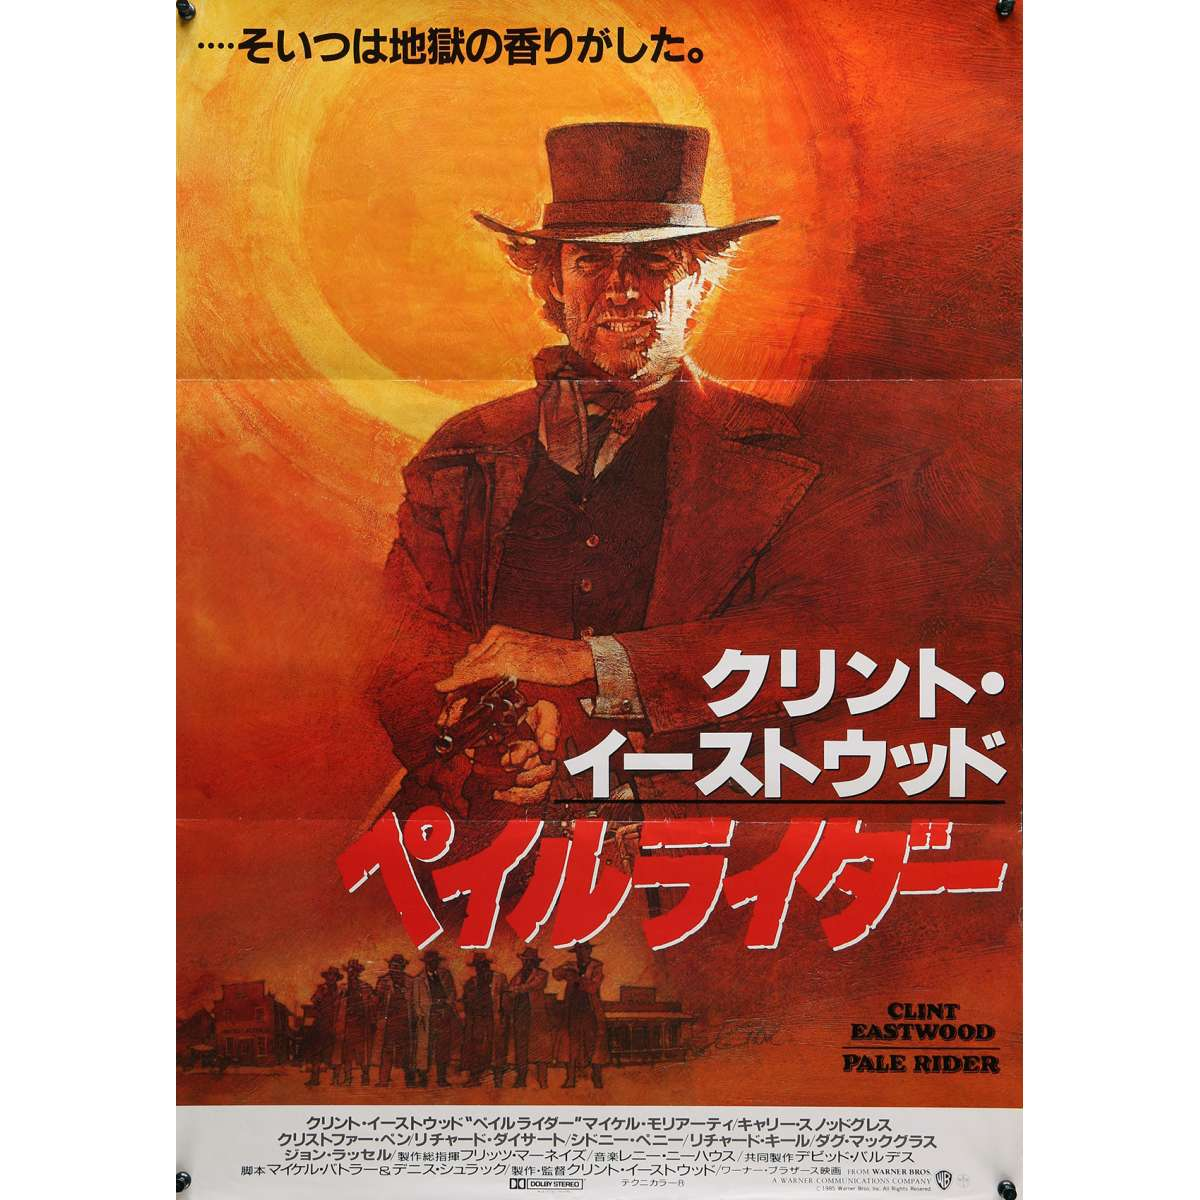 PALE RIDER Movie Poster 20x28 In